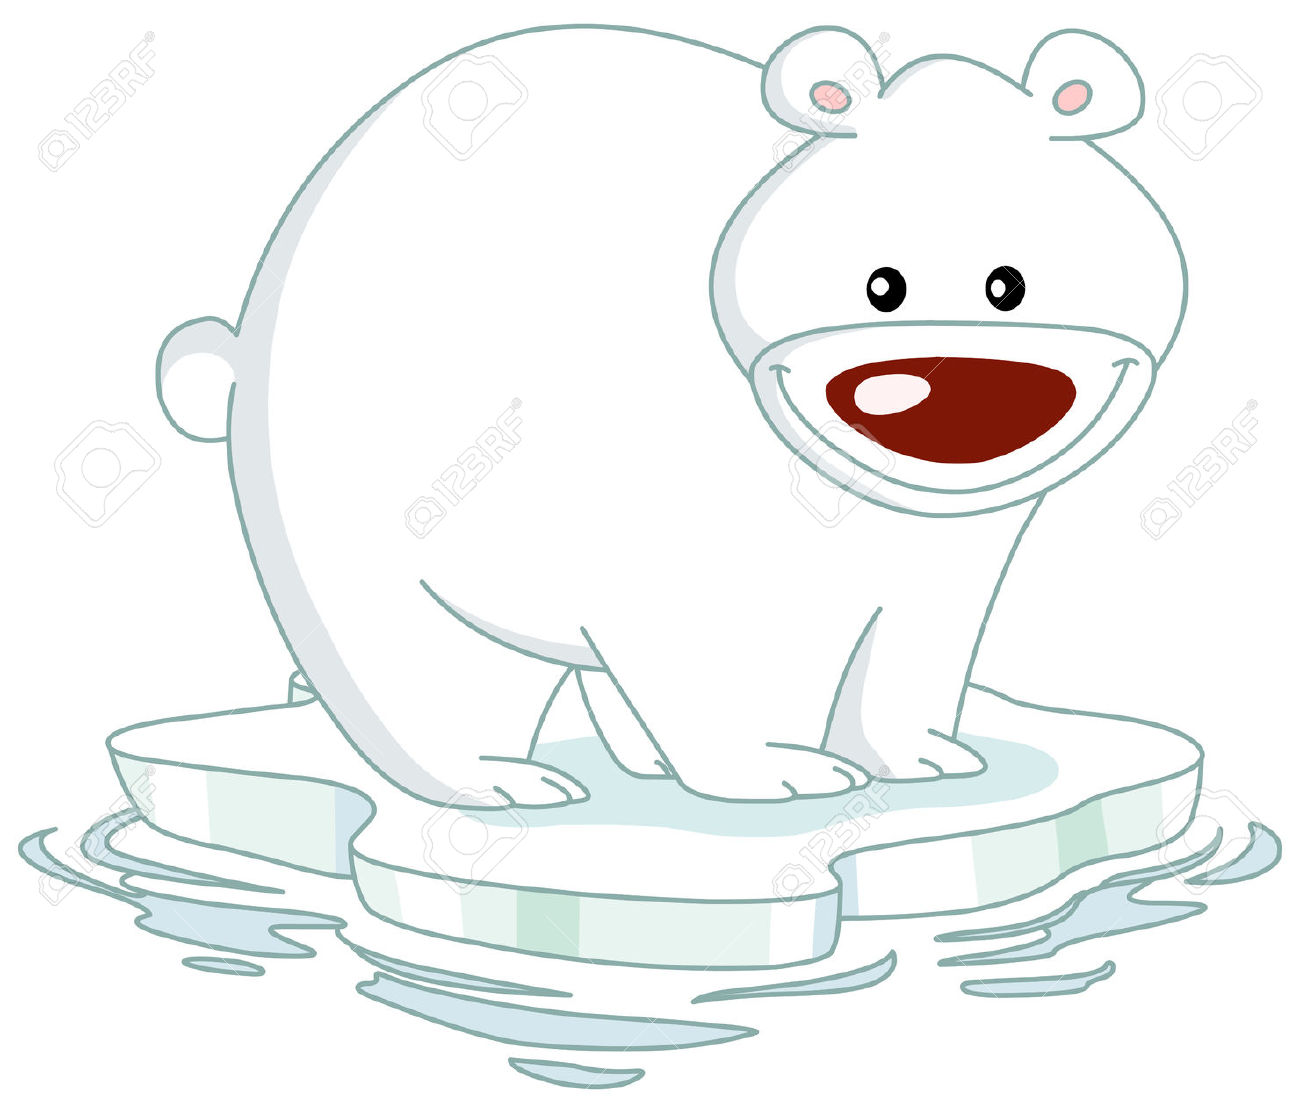 Icefloe clipart #1, Download drawings